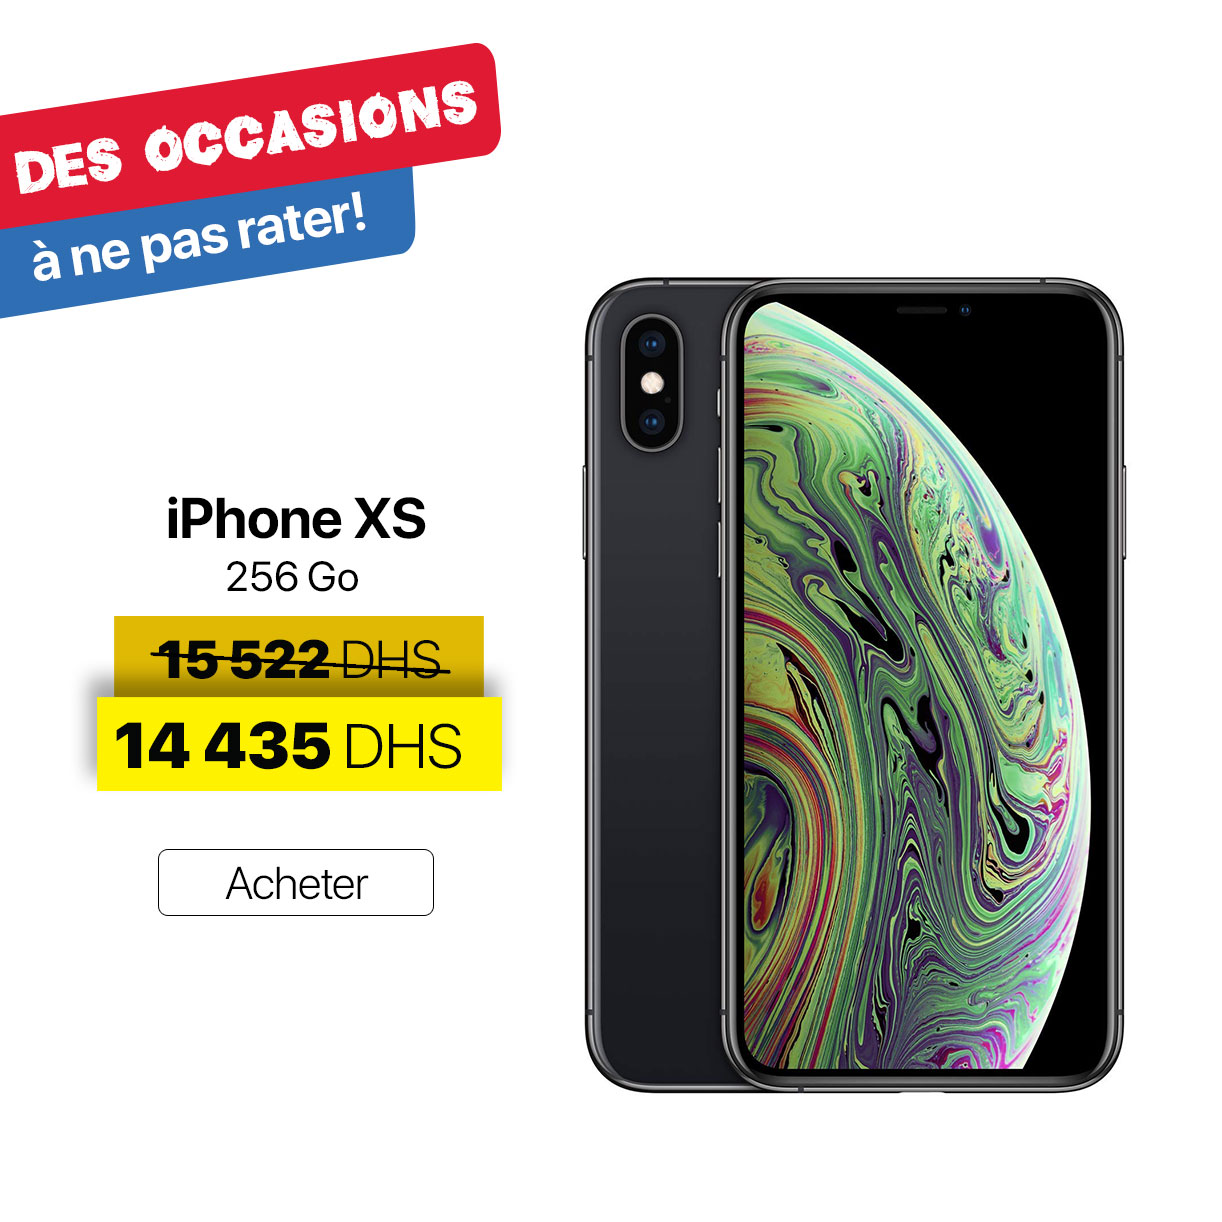 iPhone XS offer